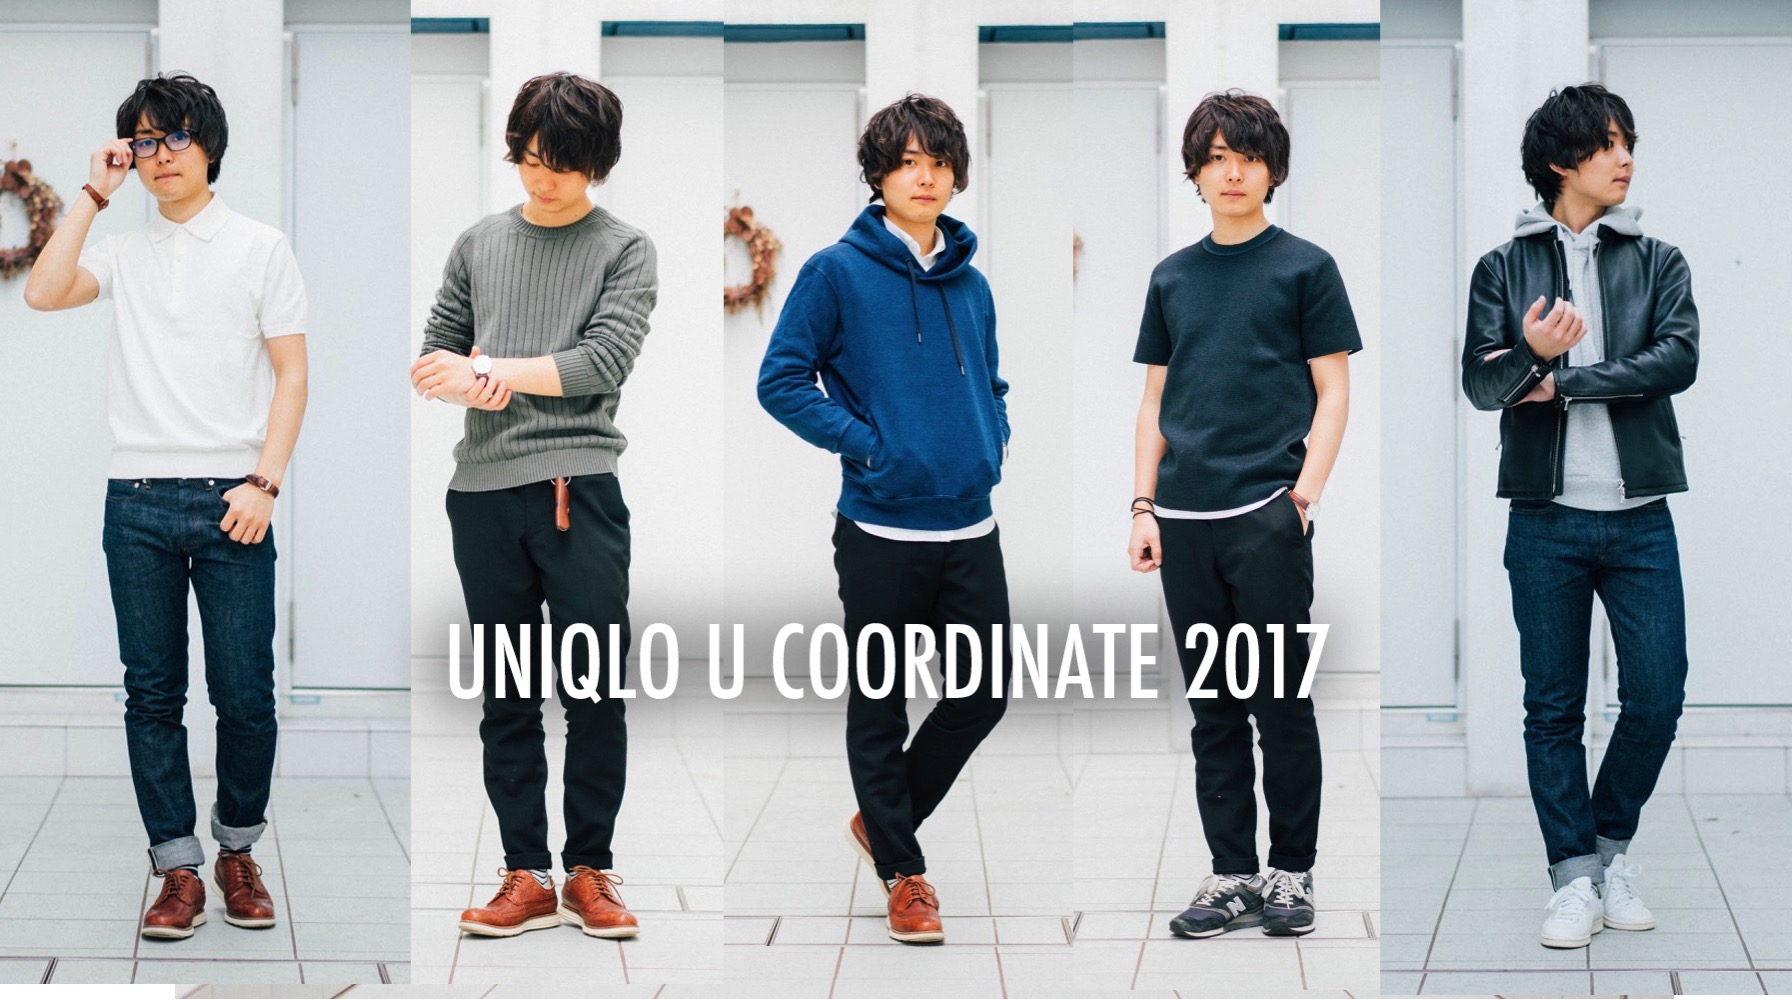 Uniqlo u coordinate 2017 top